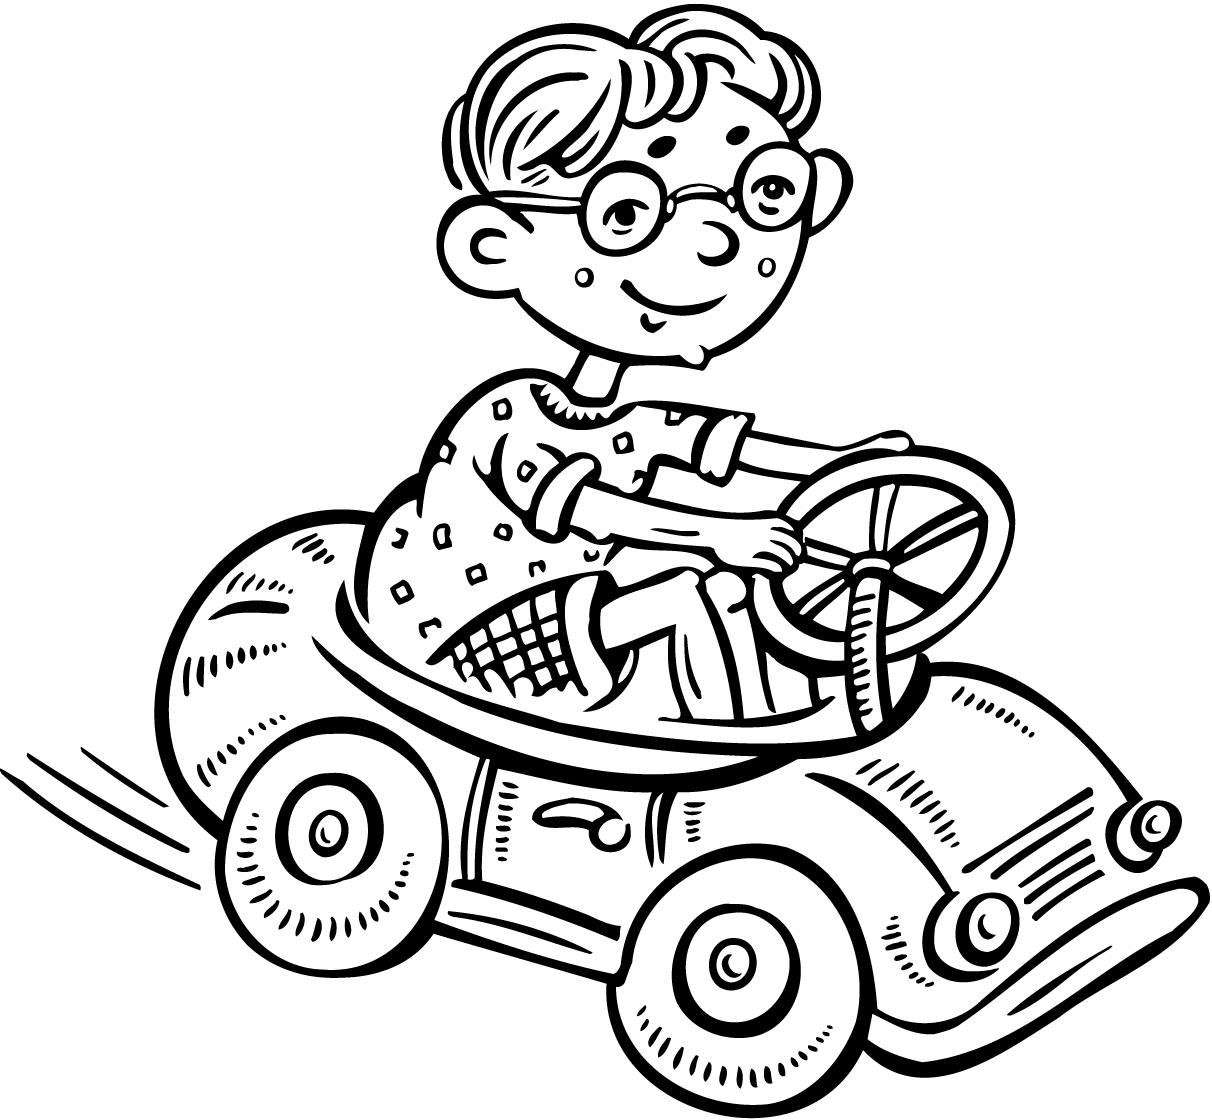 Toy Car Drawing at GetDrawings.com | Free for personal use Toy Car ...